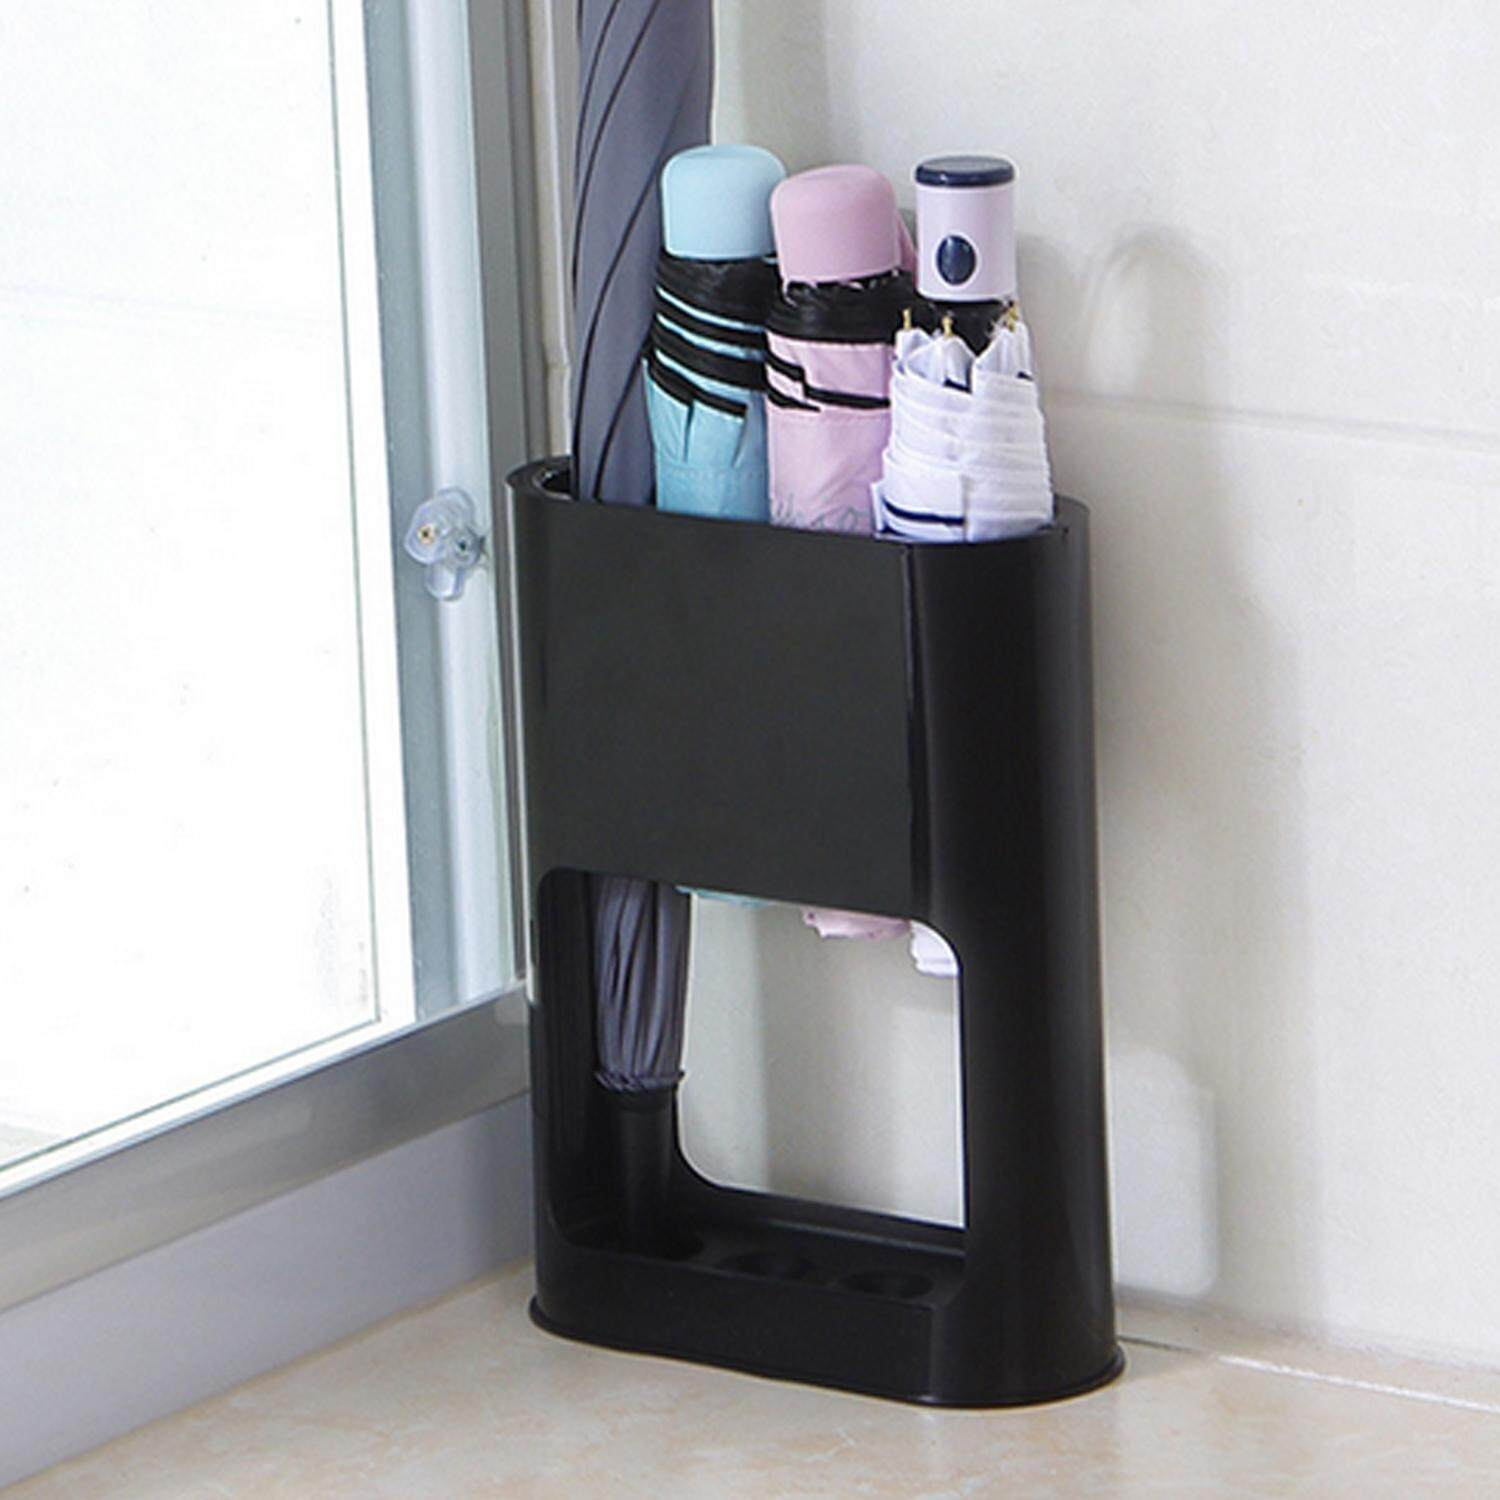 Universal 4-Slot Plastic Umbrella Stand Storage Holder Support Racks Shelve Organizer with Removable Drip Tray for Hallway Outdoor Indoor